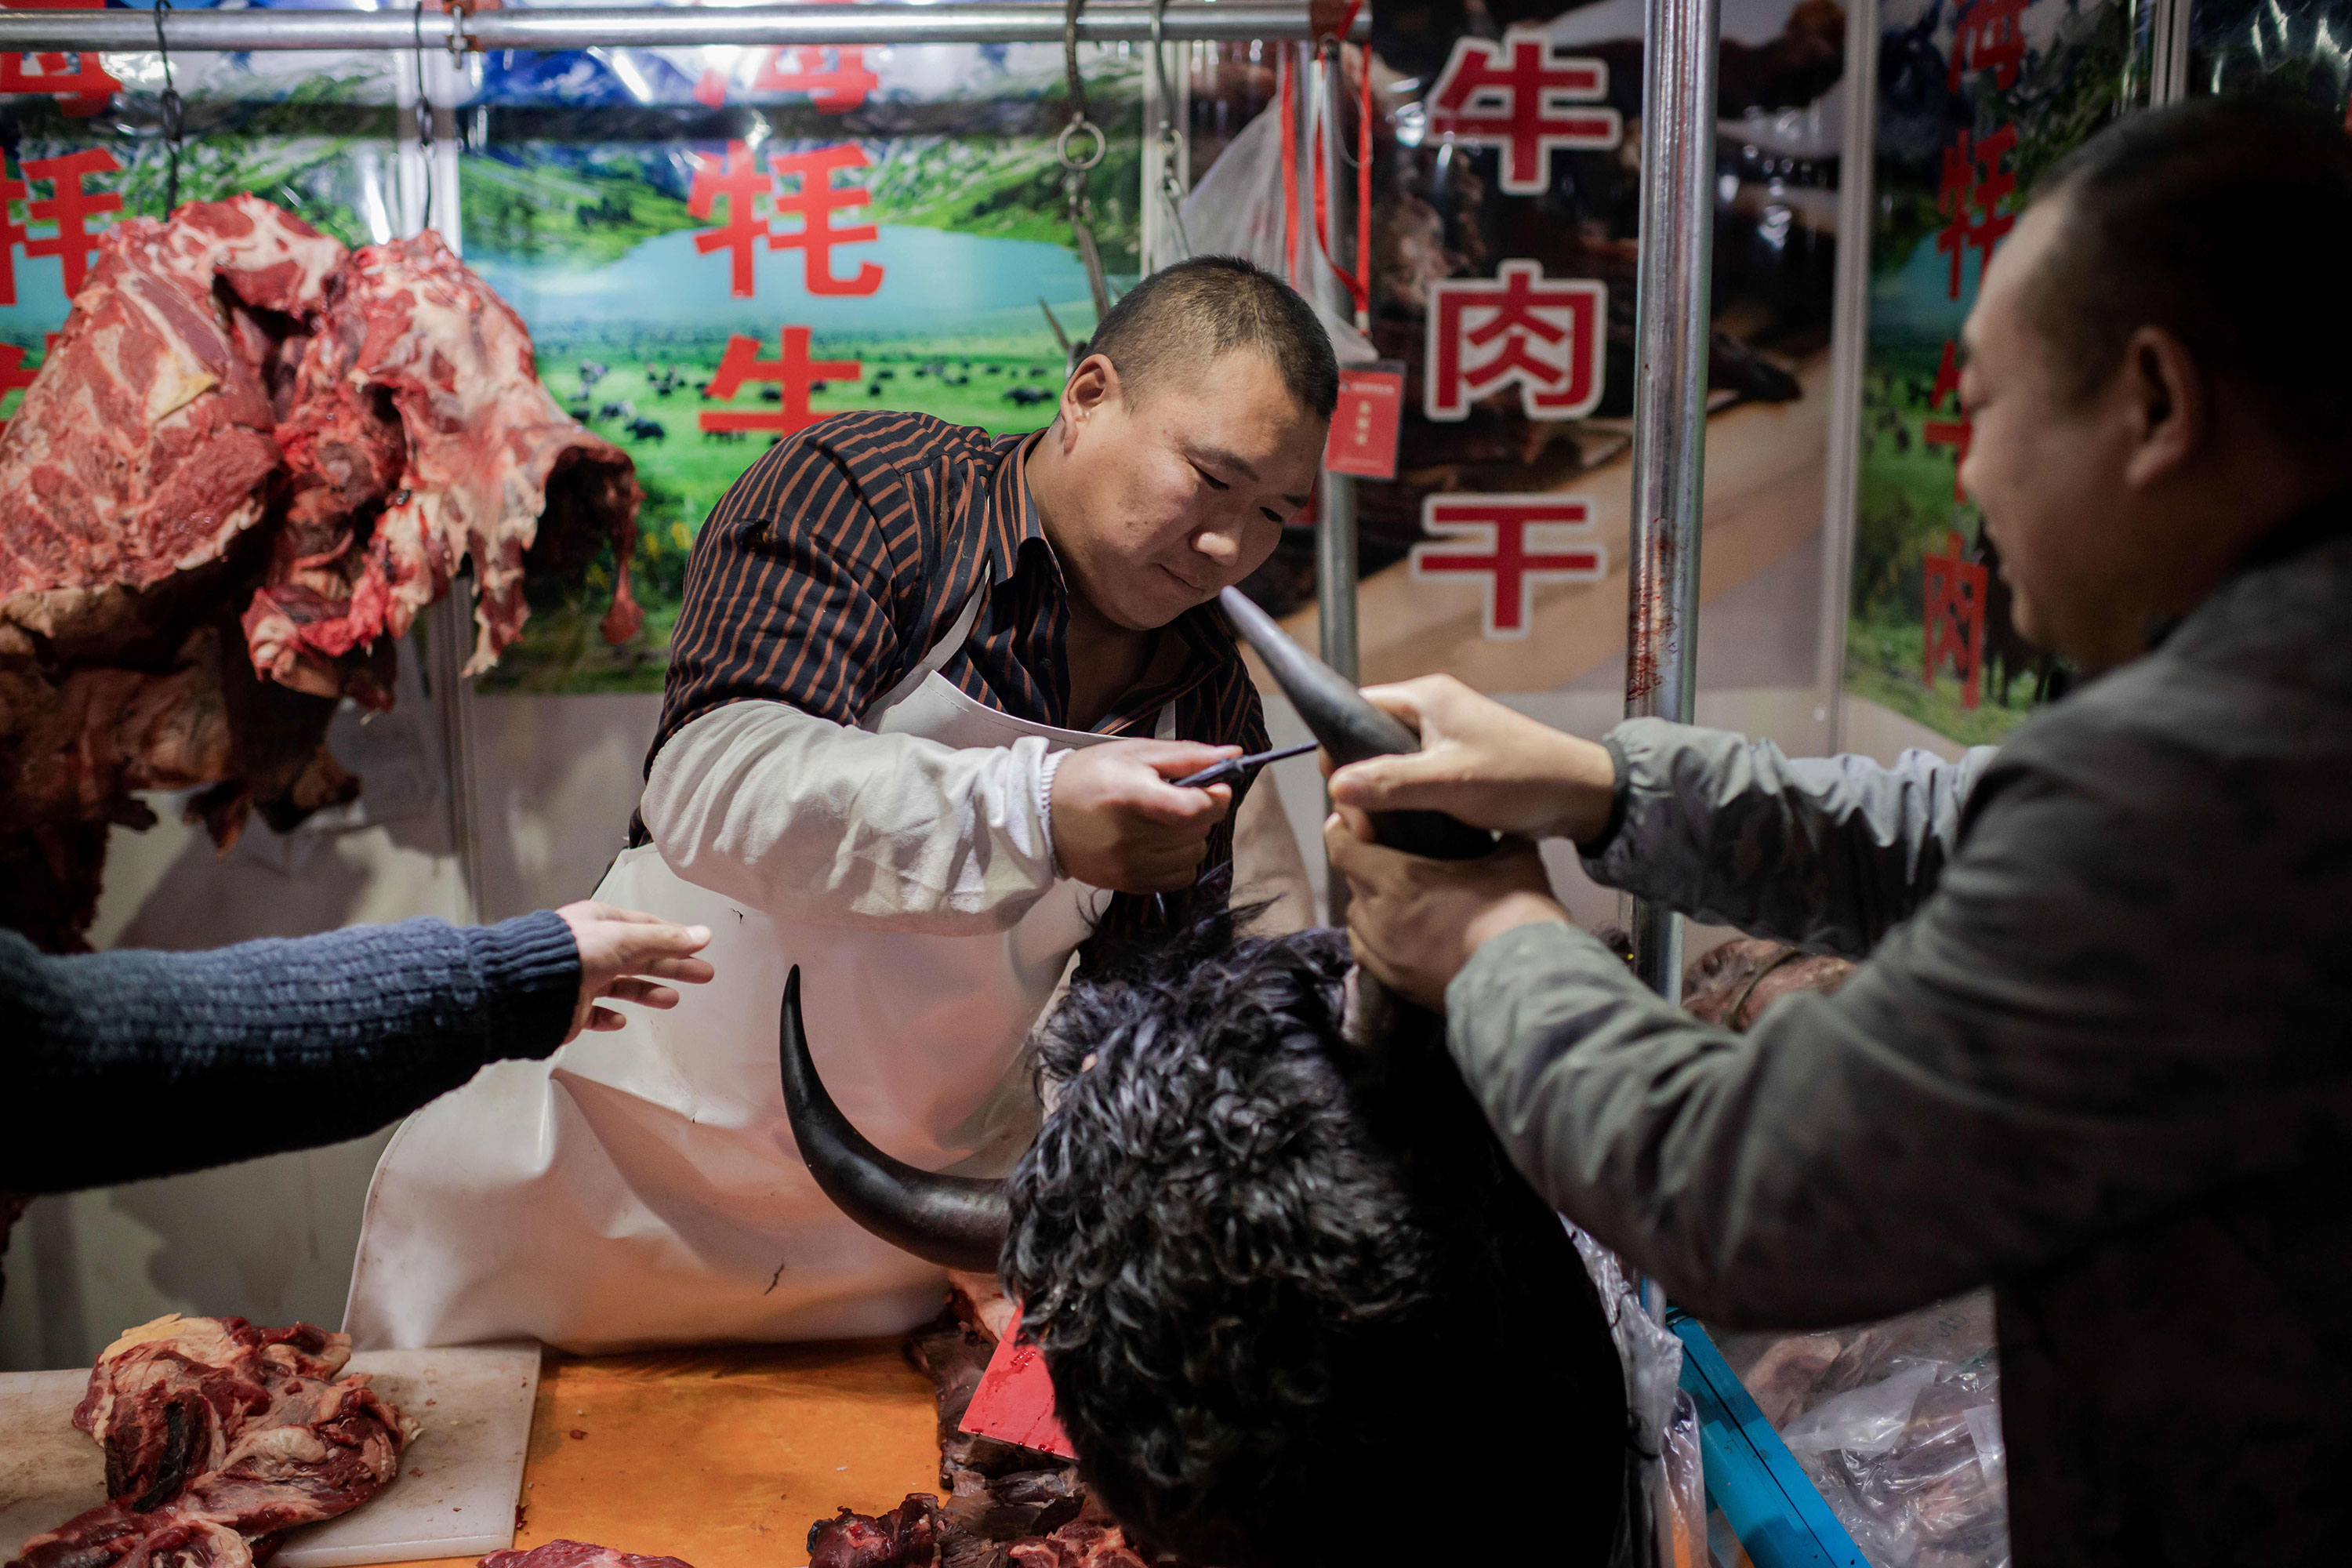 Chinese officials crack down on wildlife markets as coronavirus outbreak nears 3,000 cases